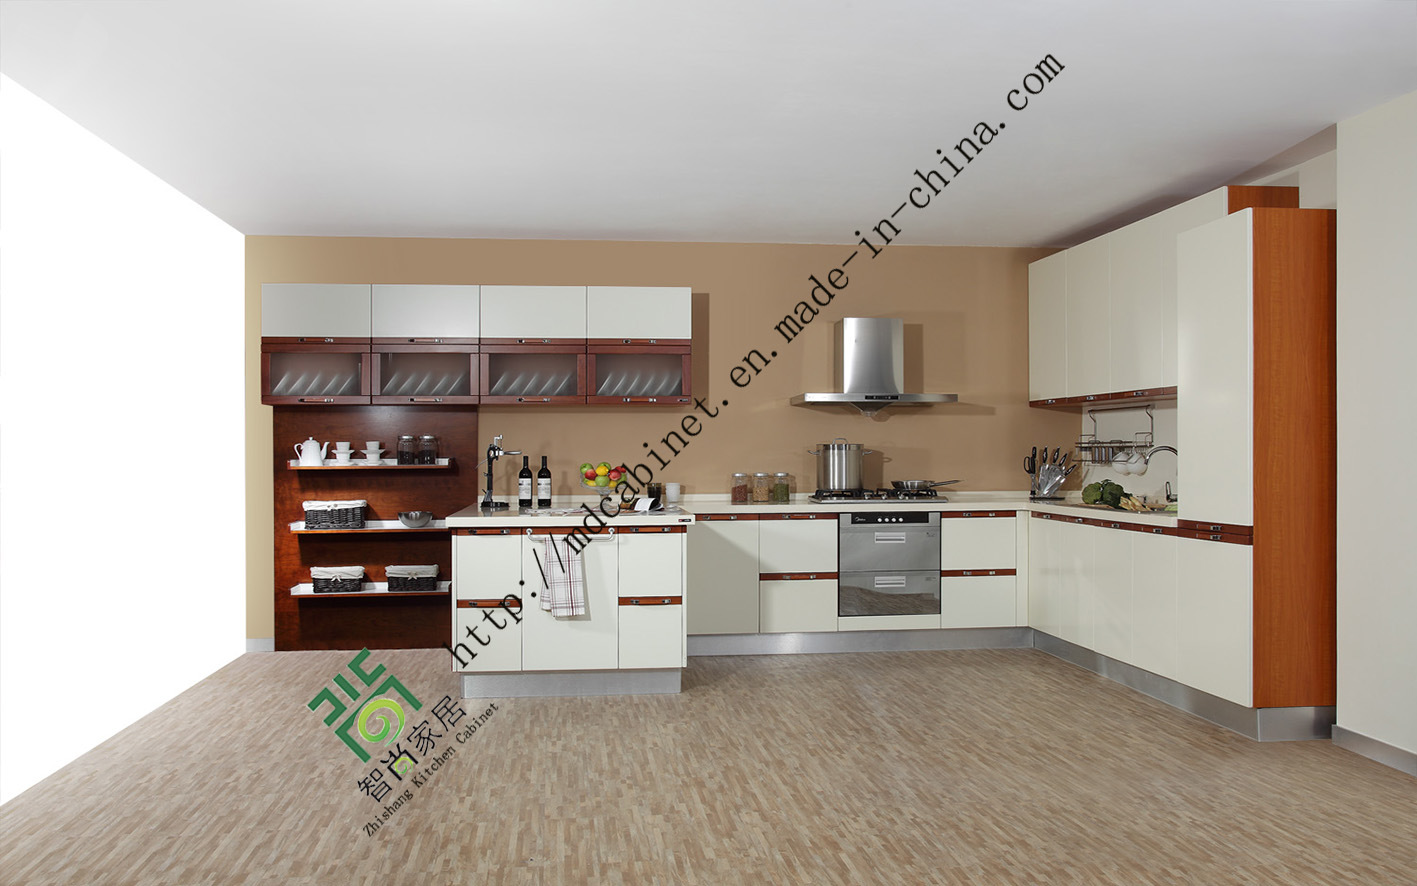 2014 Wooden Kitchen Cabinets with Woodgrain Designs (ZS-08)